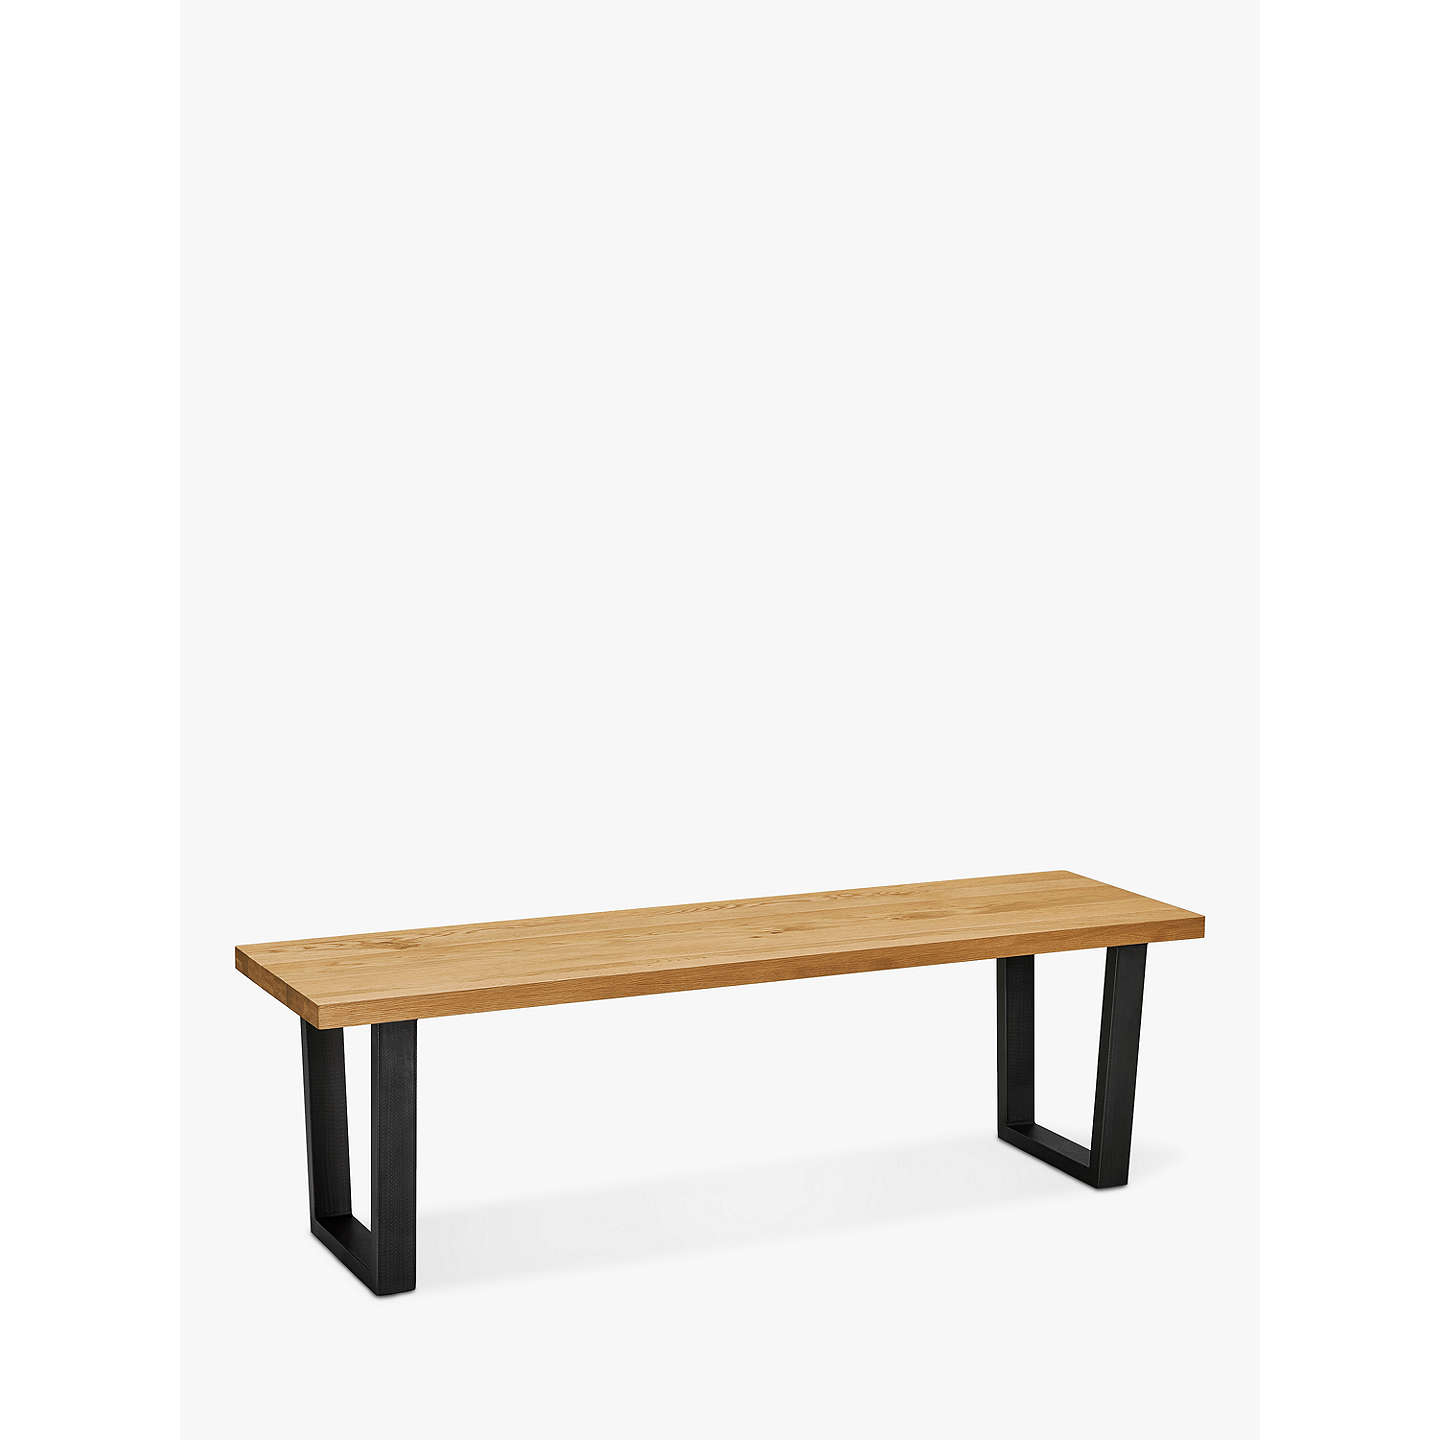 john lewis calia 3-seater dining bench at john lewis 3 Seater Dining Bench